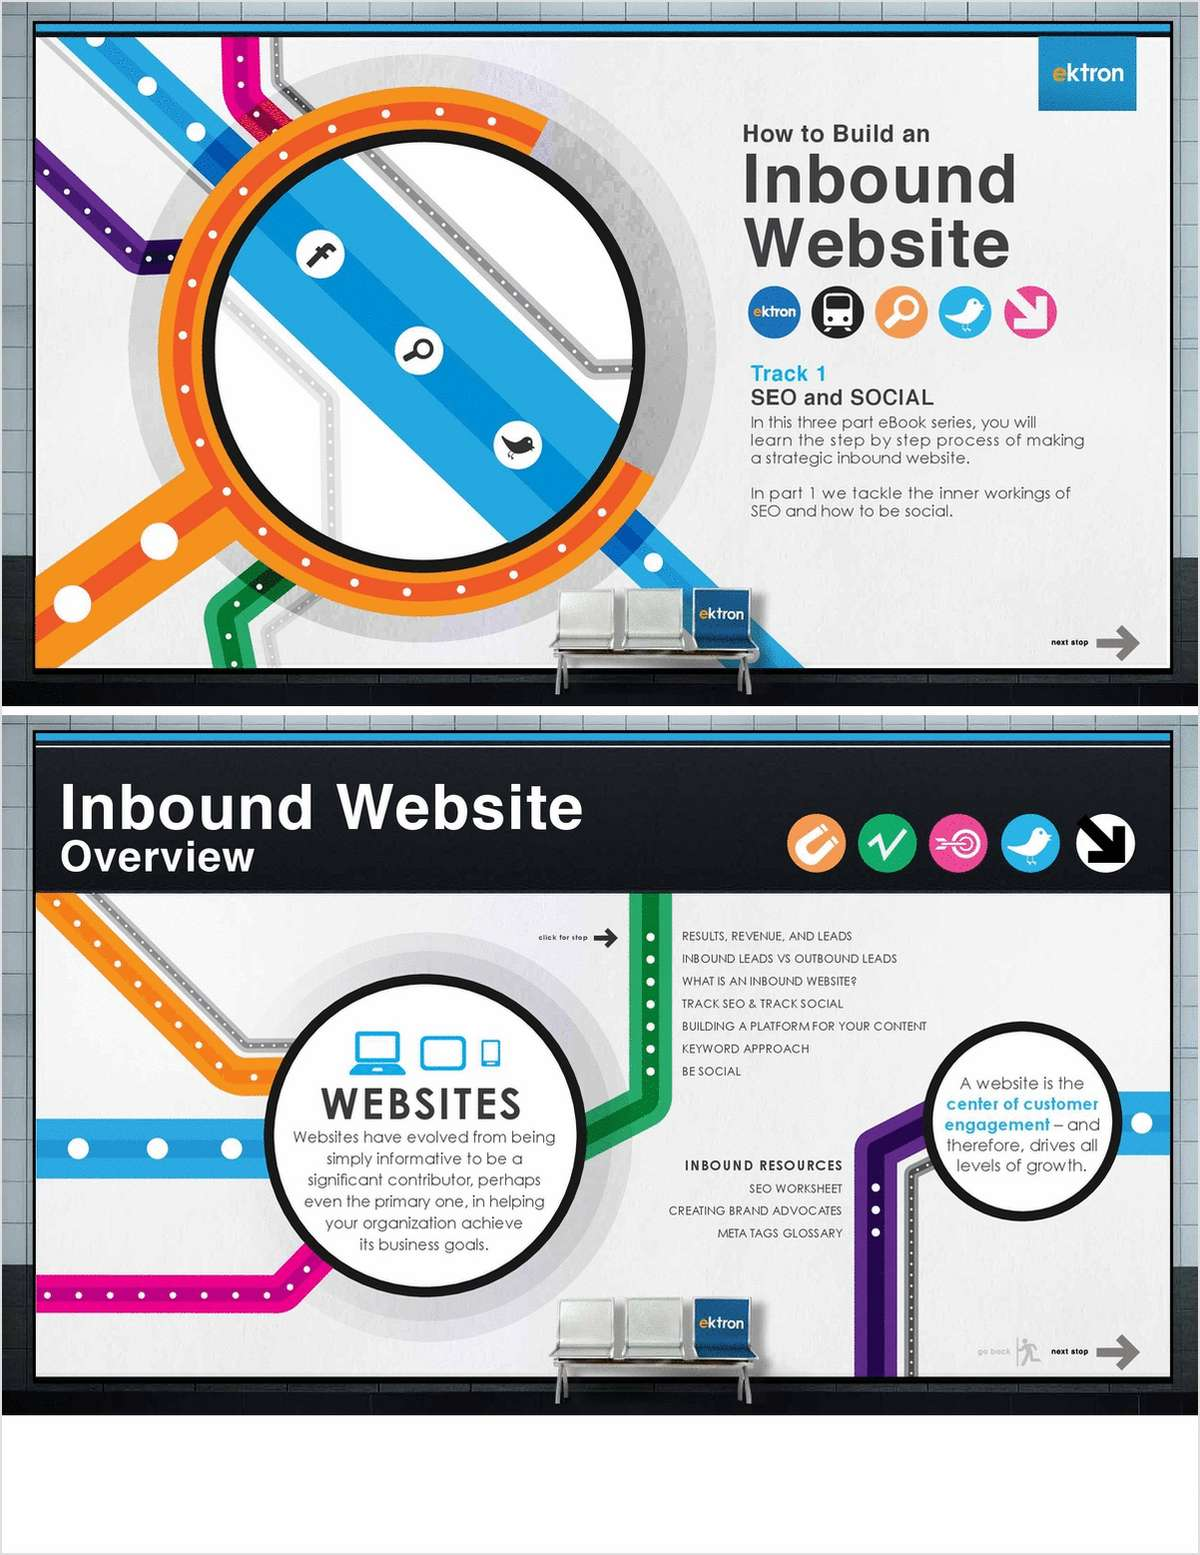 The Inbound Website: Getting Found with SEO & Social